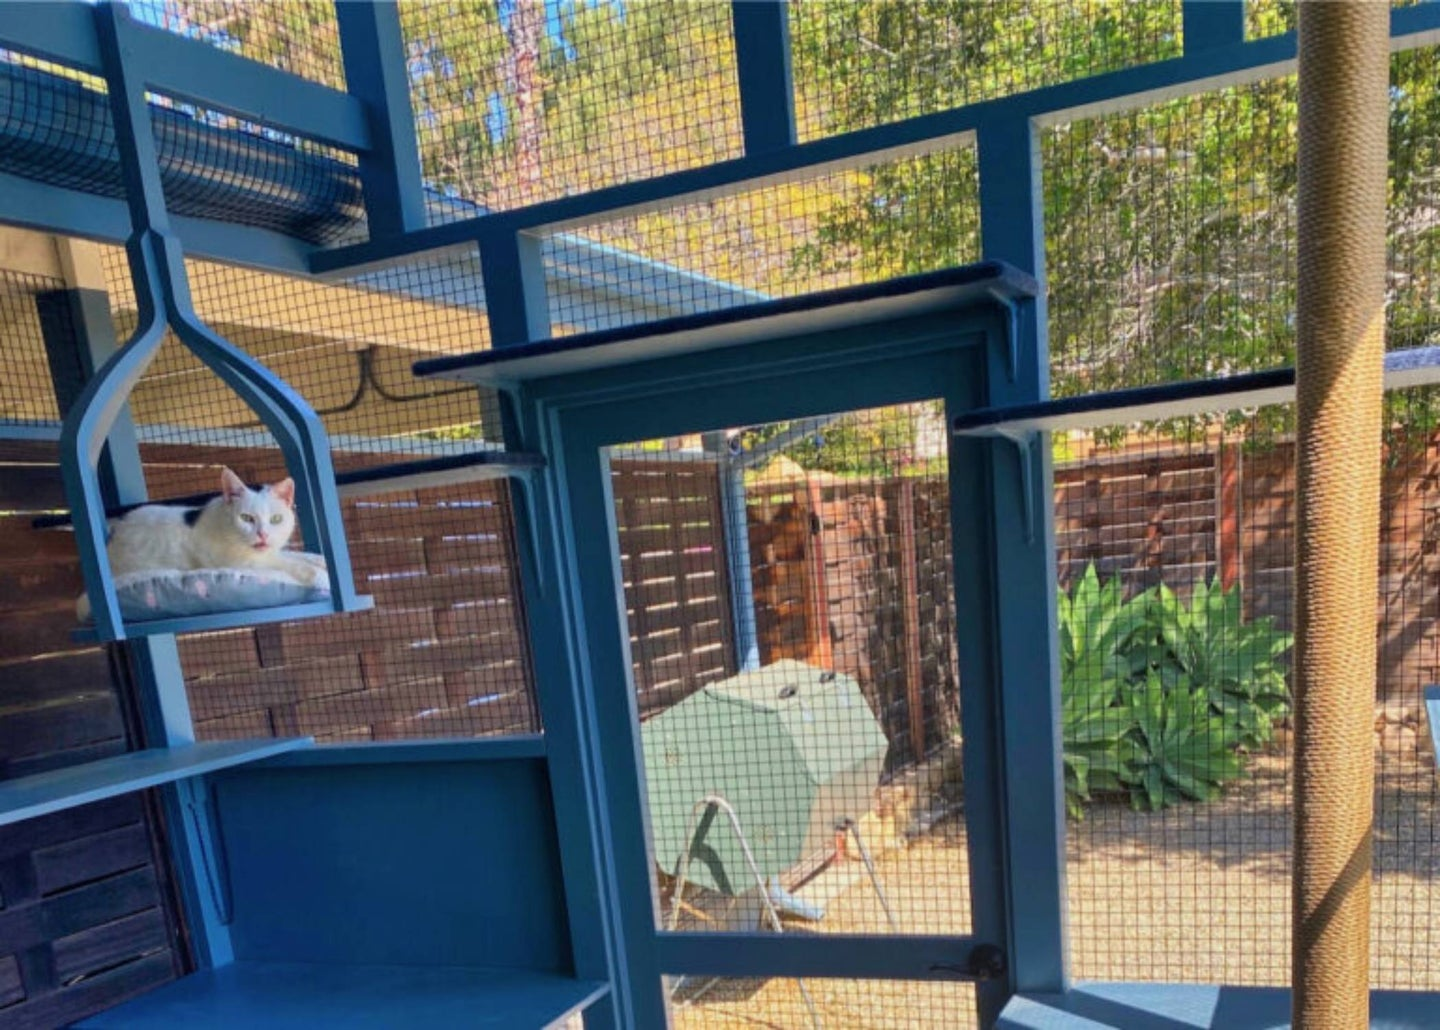 View from inside a catio with white cat on a swing